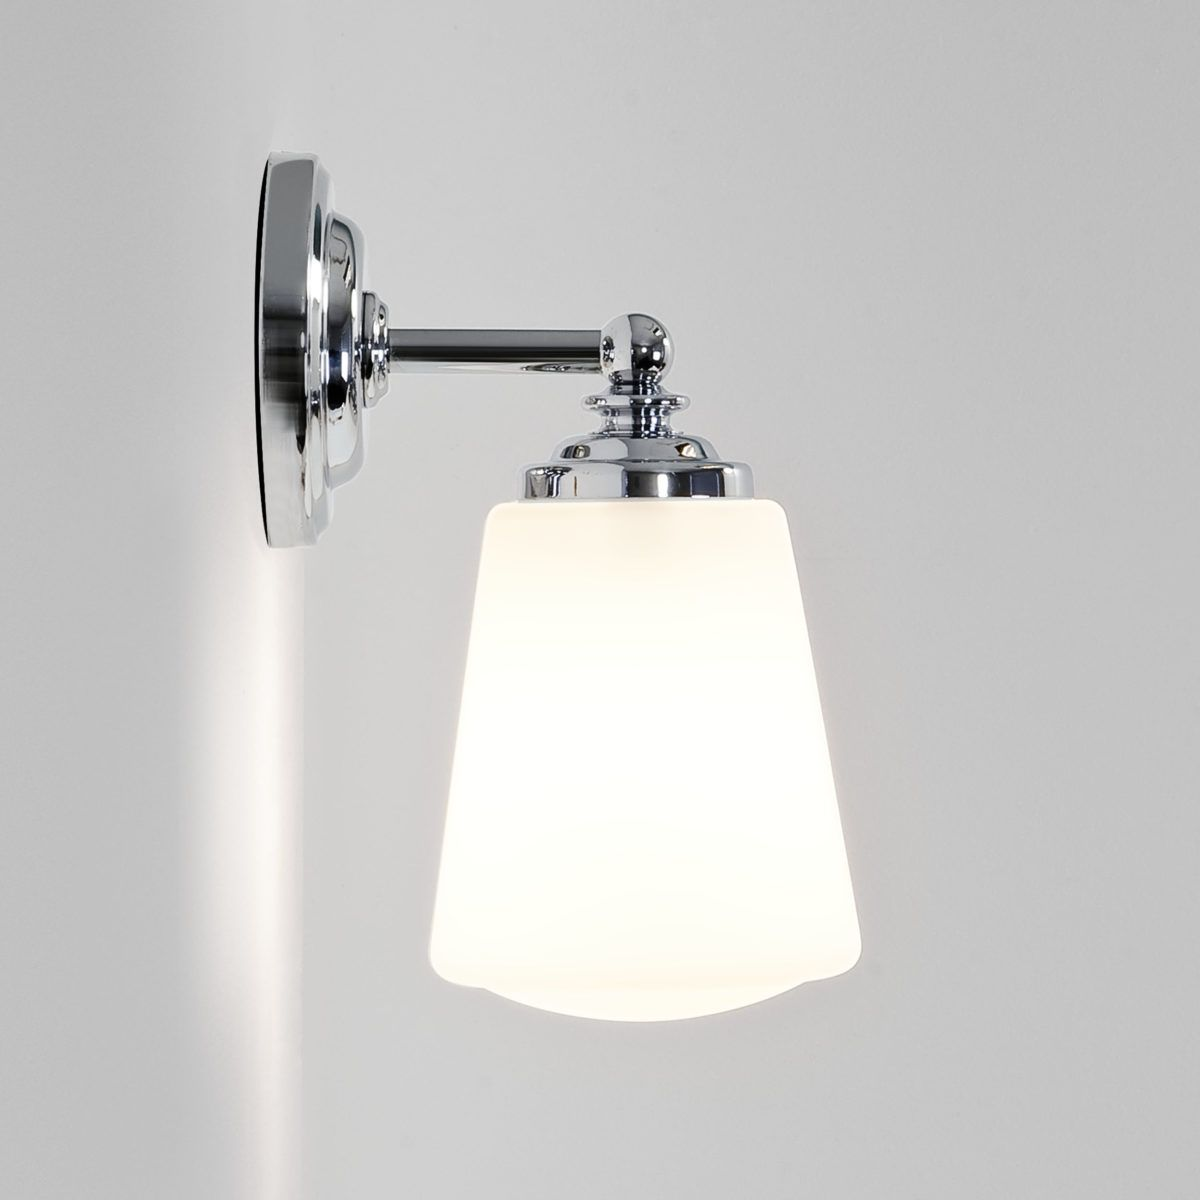 Anton ip44 wall light sydney lighthouse bathrooms pinterest the anton bathroom wall light from astro lighting is finished in polished chrome with a white glass shade a lovely sophisticated fitting for both modern arubaitofo Images